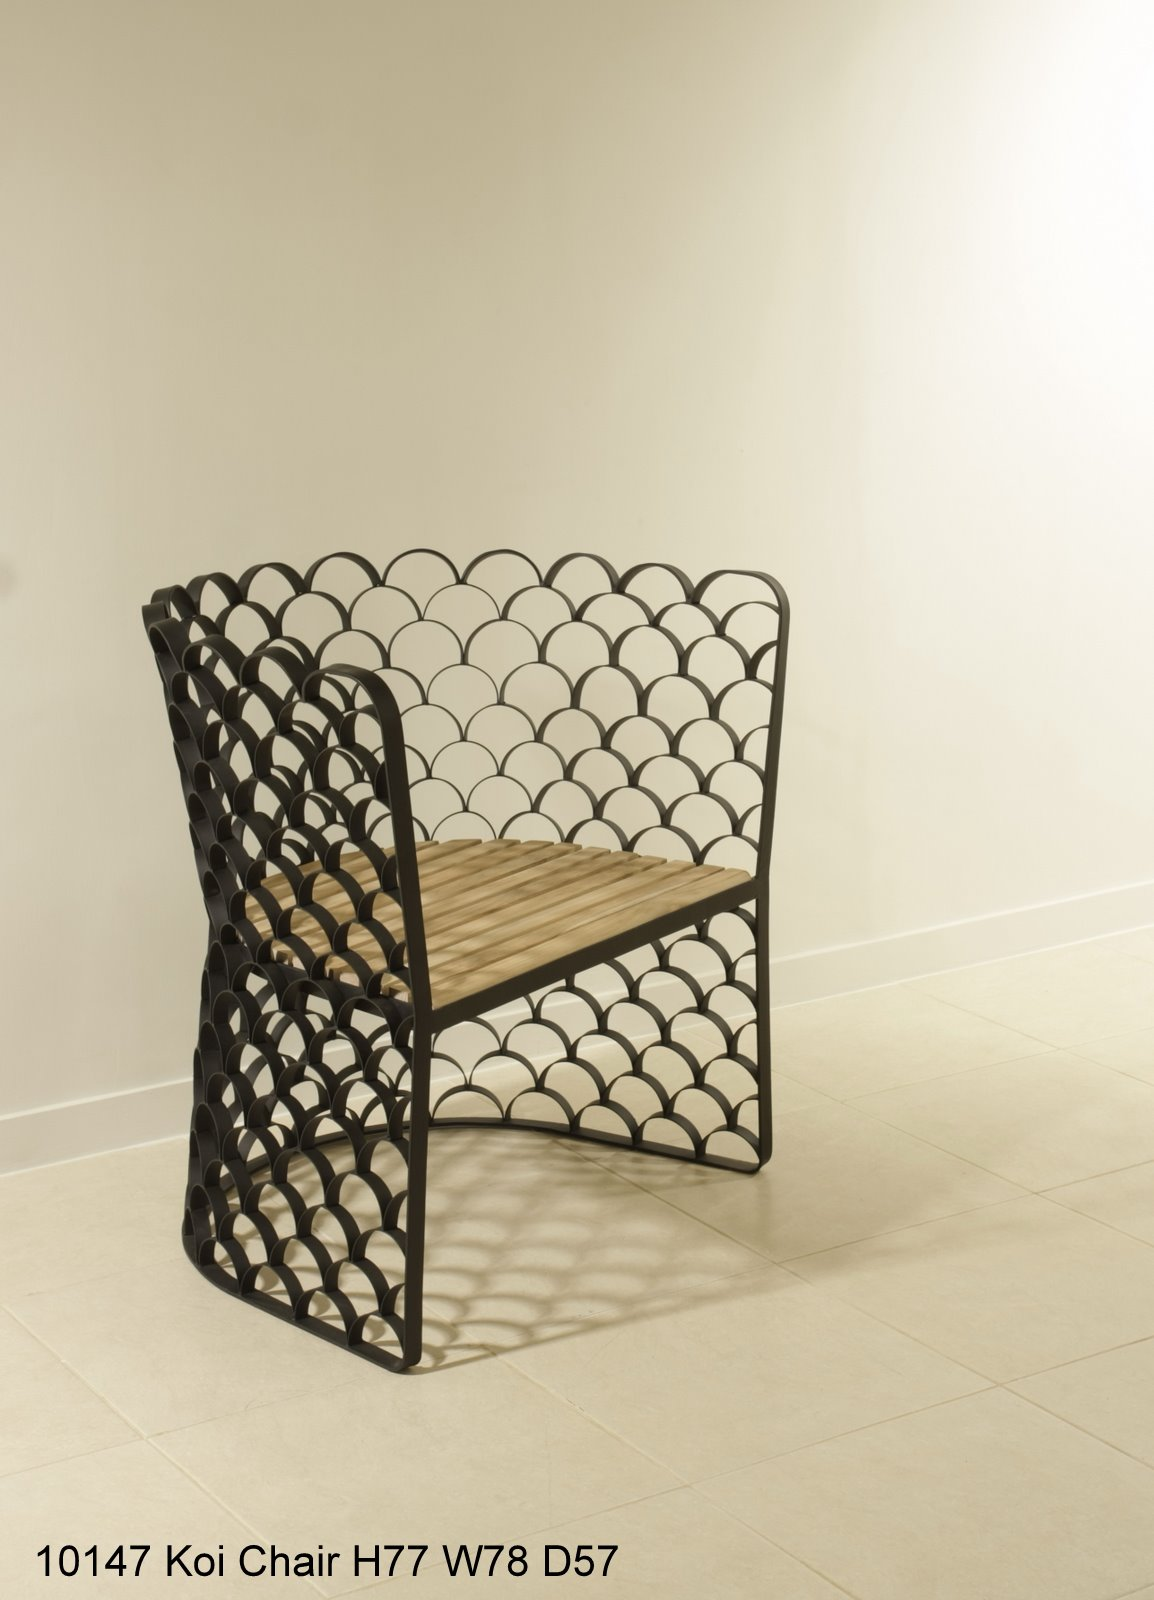 Koi chair_28.jpg